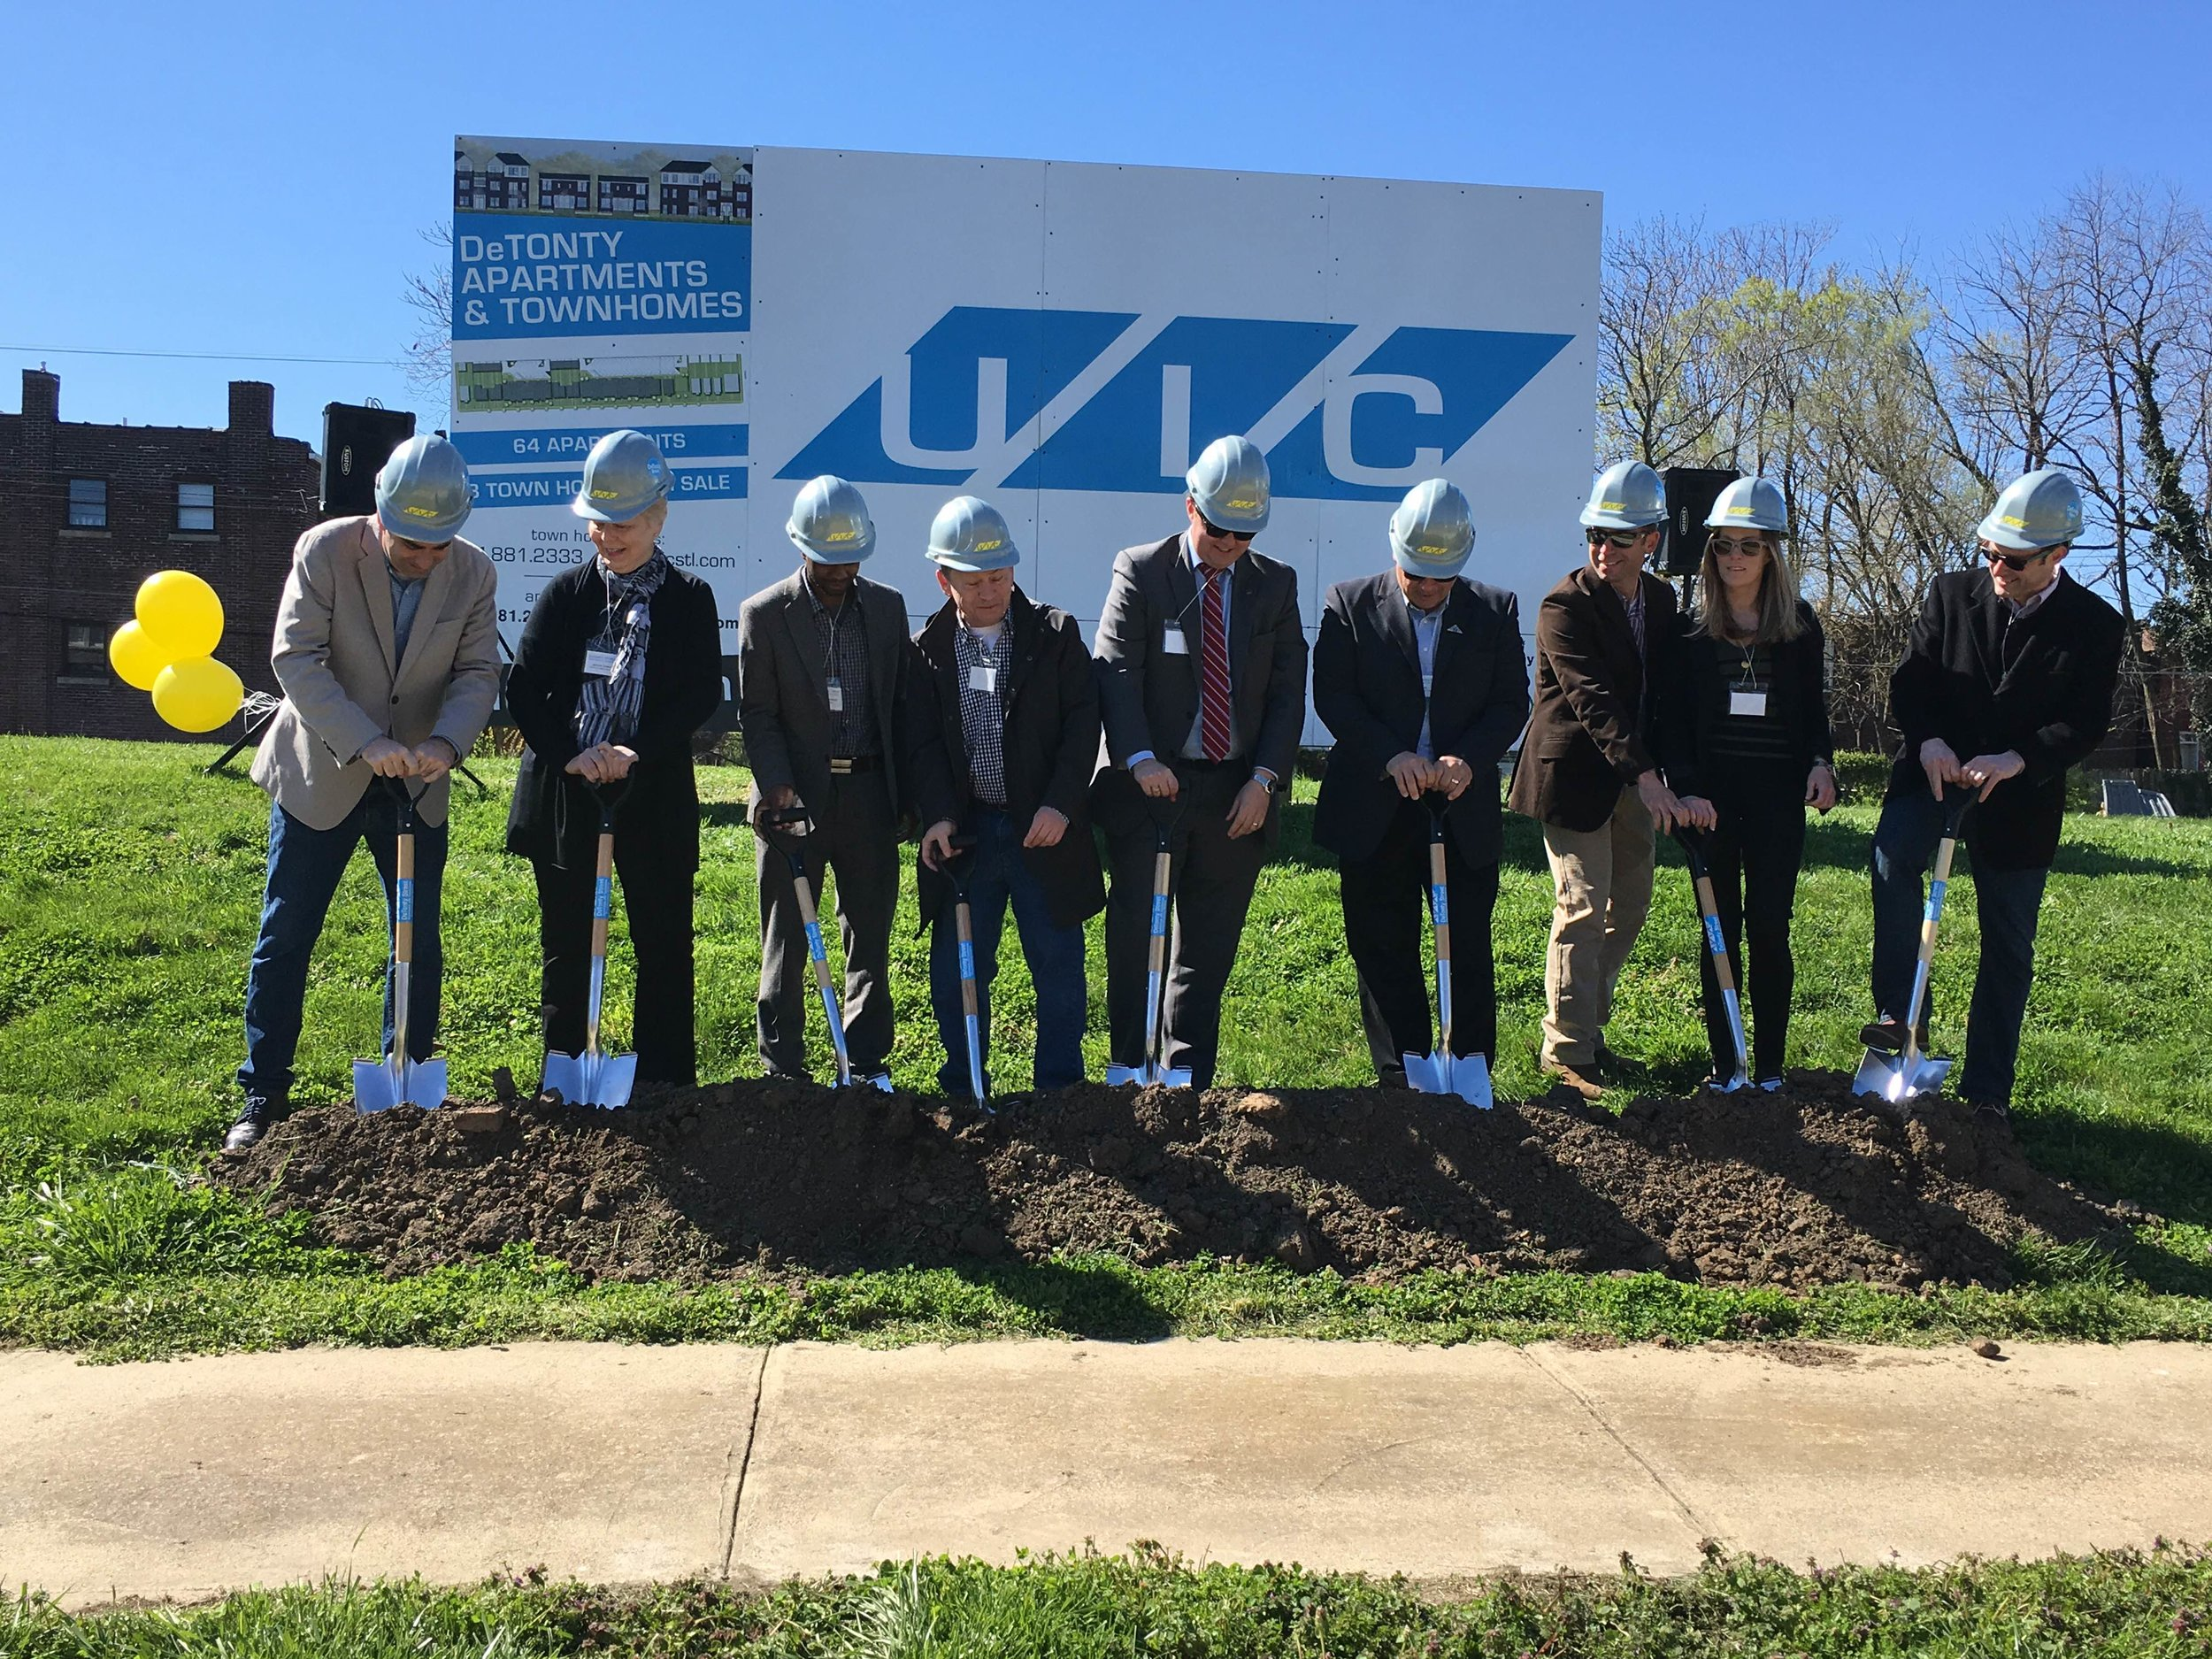 4100 Detonty Project Representatives ceremoniously shovel to celebrate the start of the long awaited UIC project.